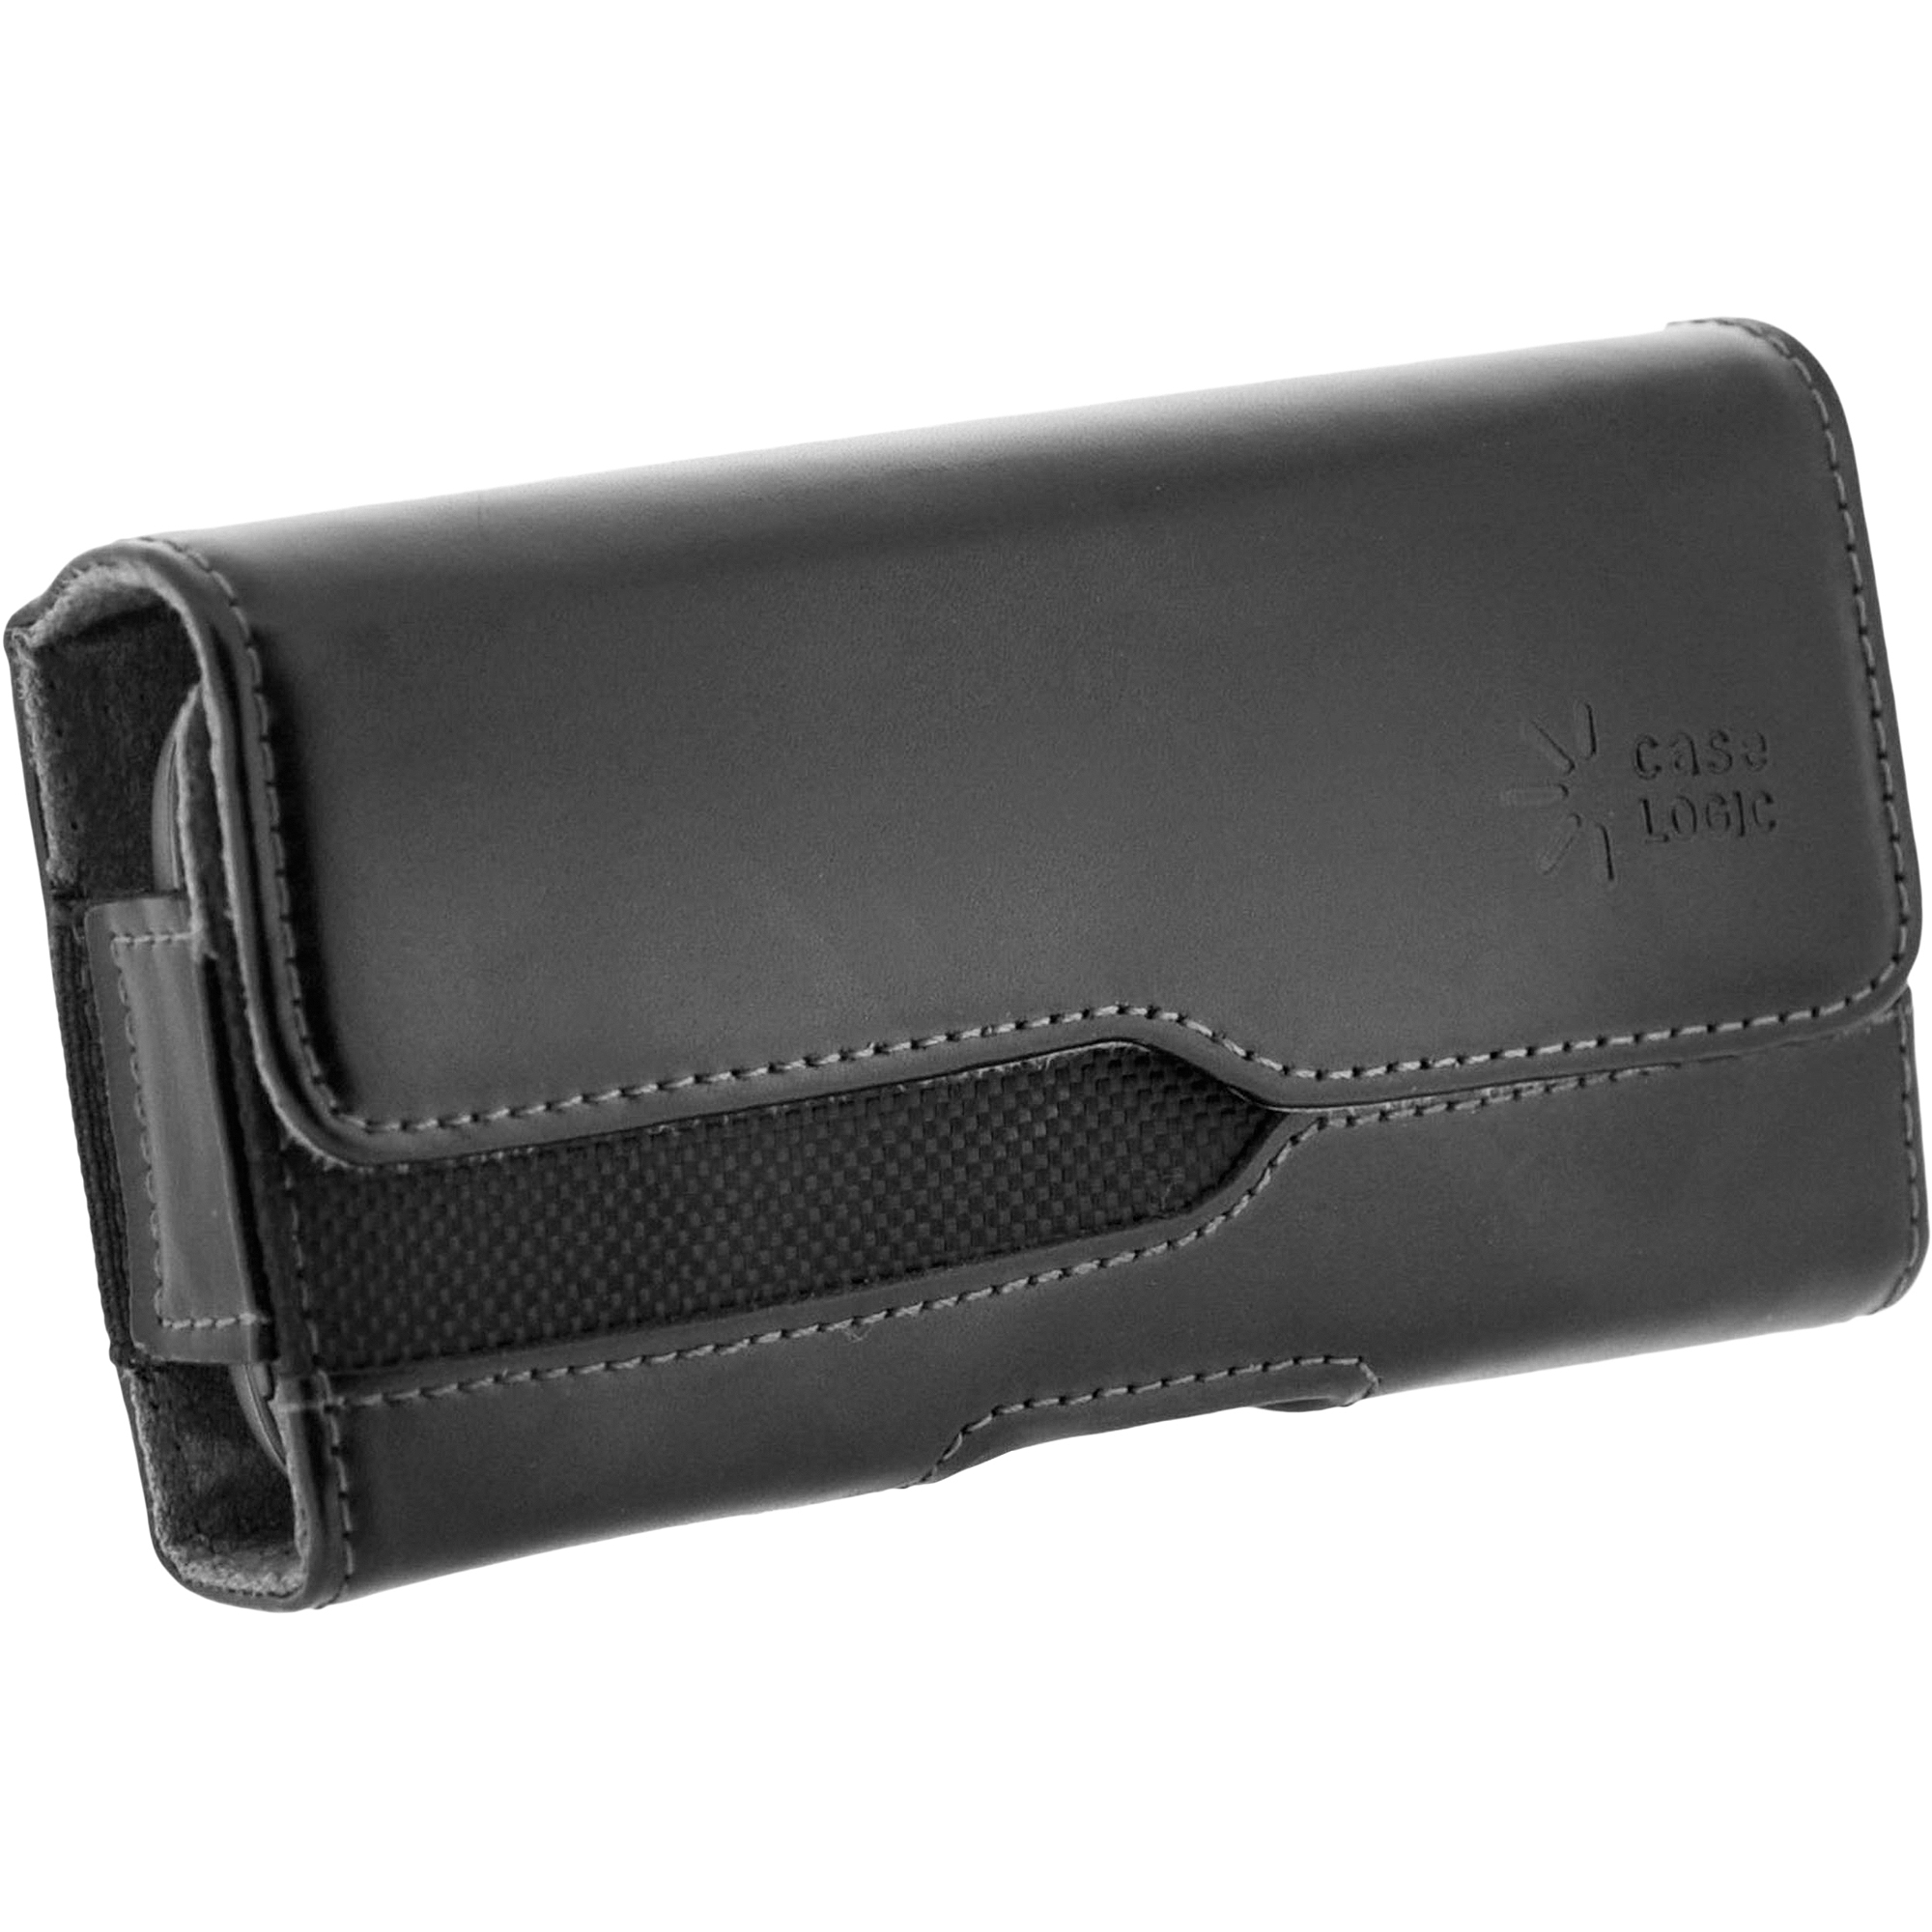 Case Logic Genuine Leather Horizontal Large Smartphone Pouch